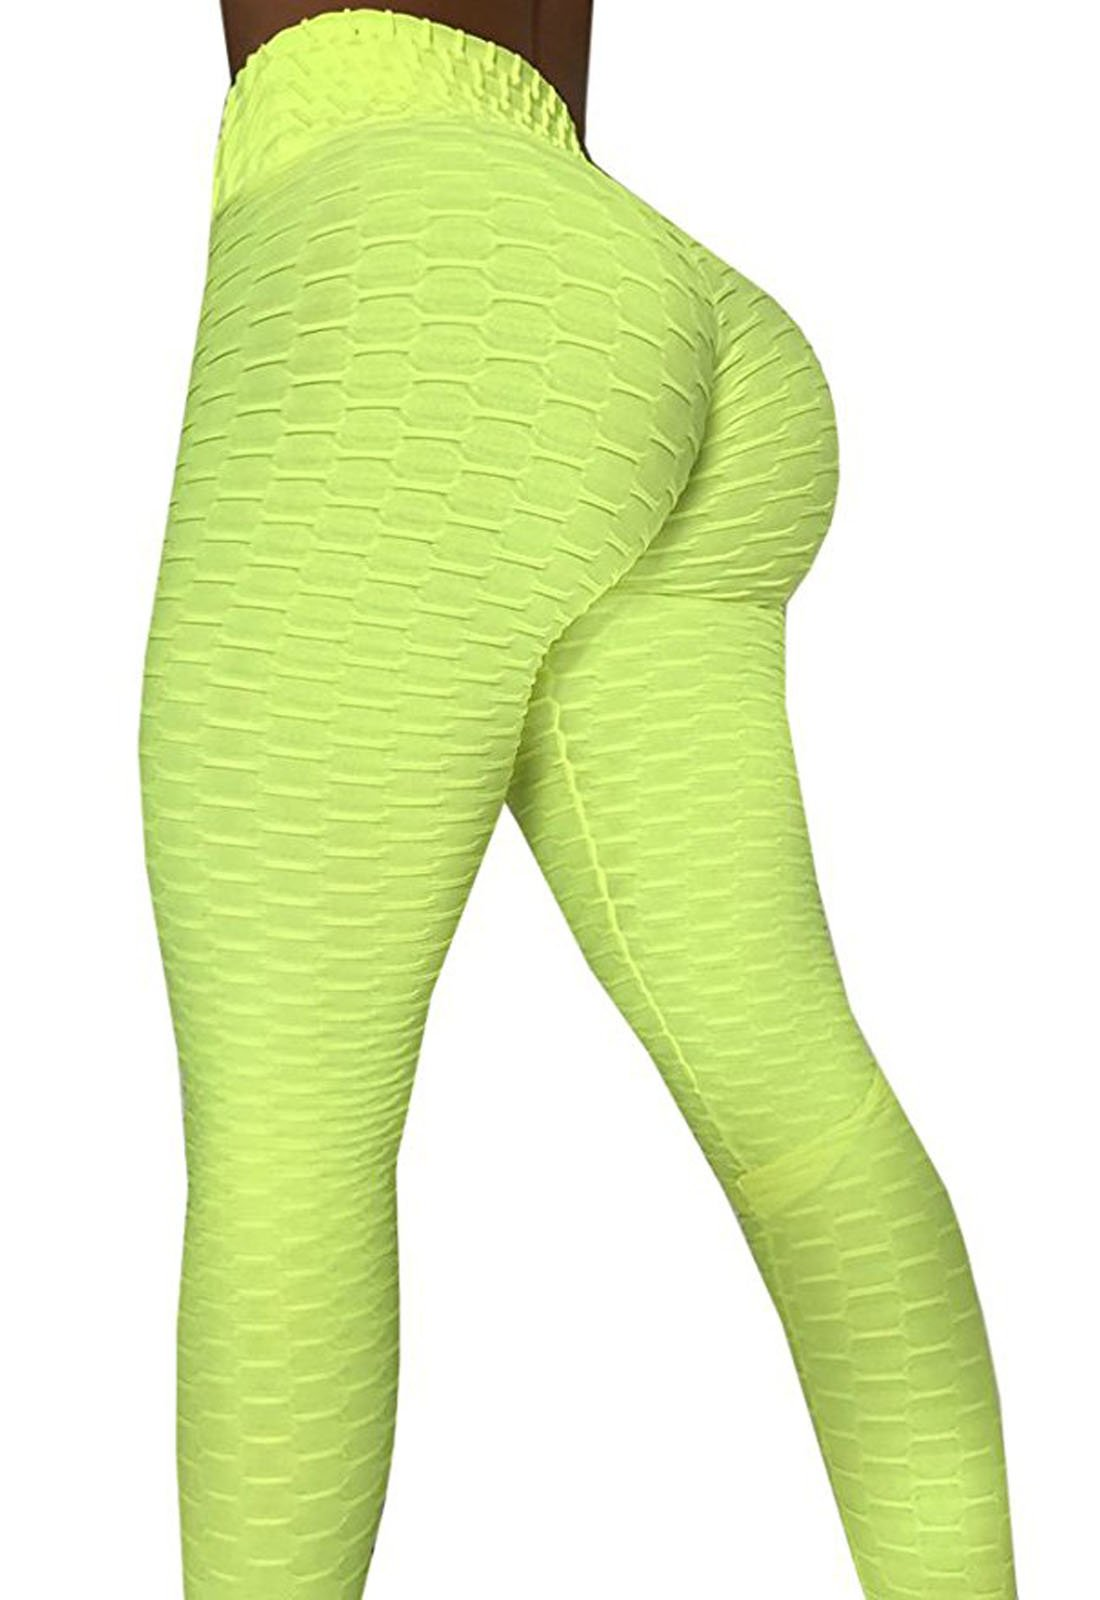 CPHMP Women's High Waist Ruched Butt Lifting Slimming Leggings Textured Stretchy Skinny Yoga Pants Thights (XL, Green)